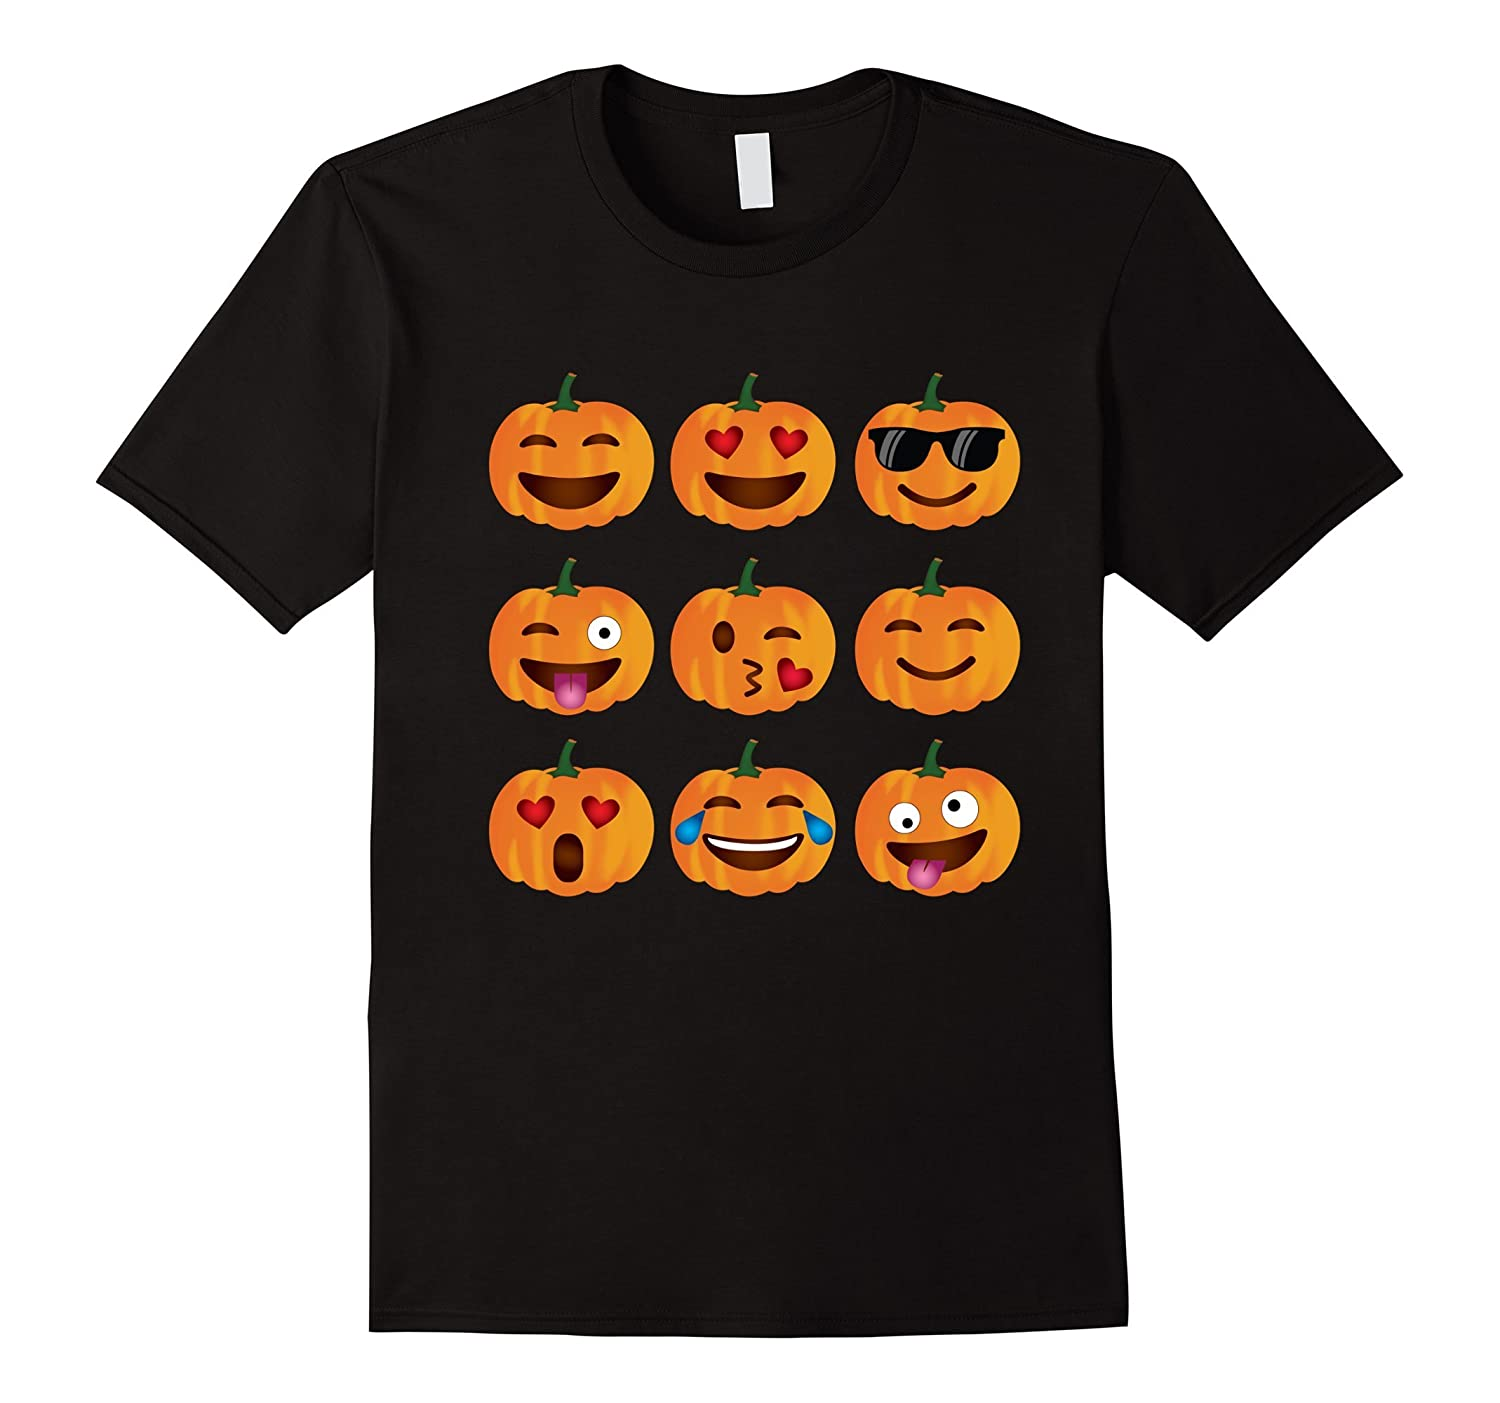 Pumpkin Emoji T-Shirt, Pumpkin Shirt Emoji Halloween Costume-T-Shirt